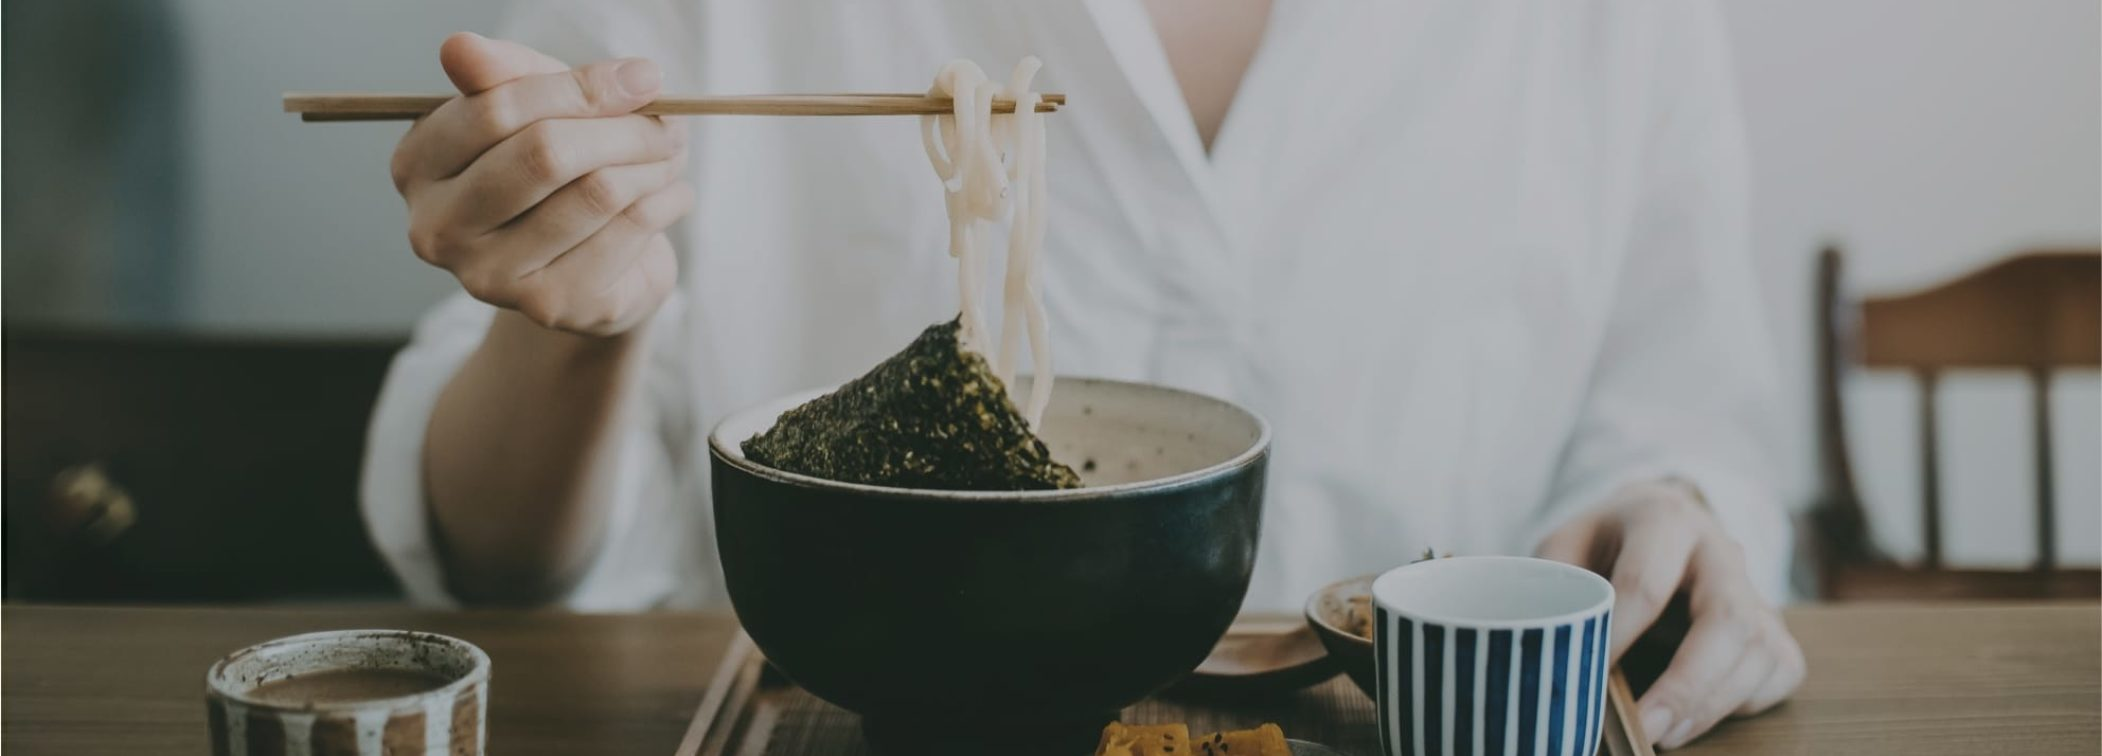 Photo of a bowl of noodles being eaten with chopsticks